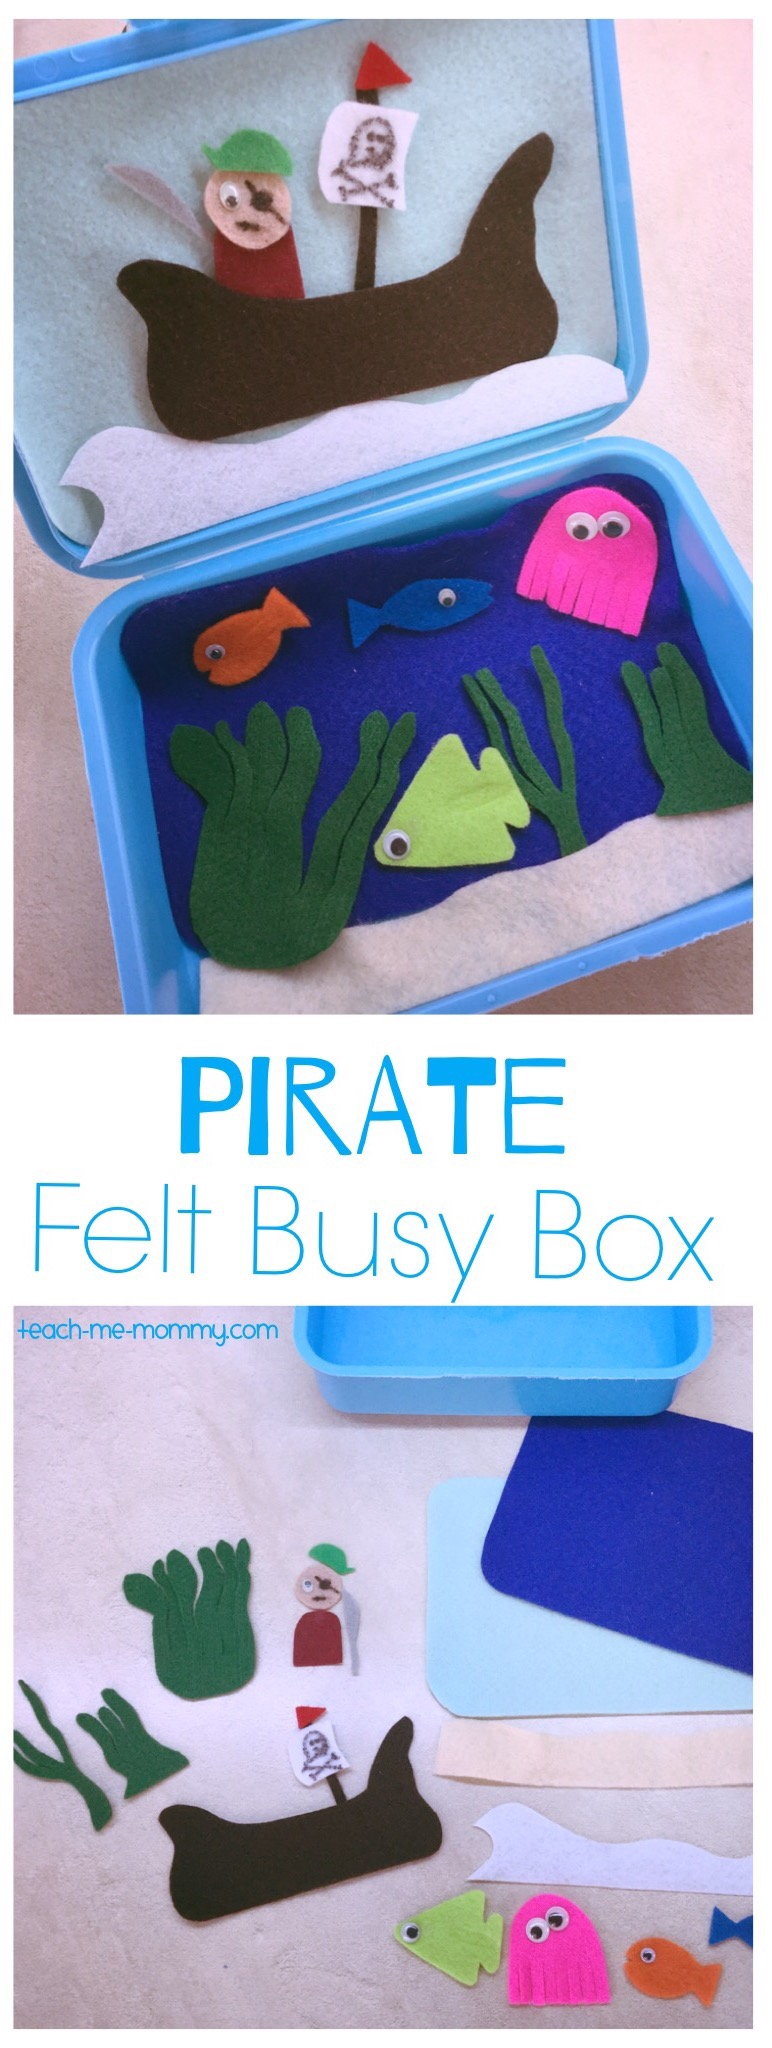 Pirate busy box